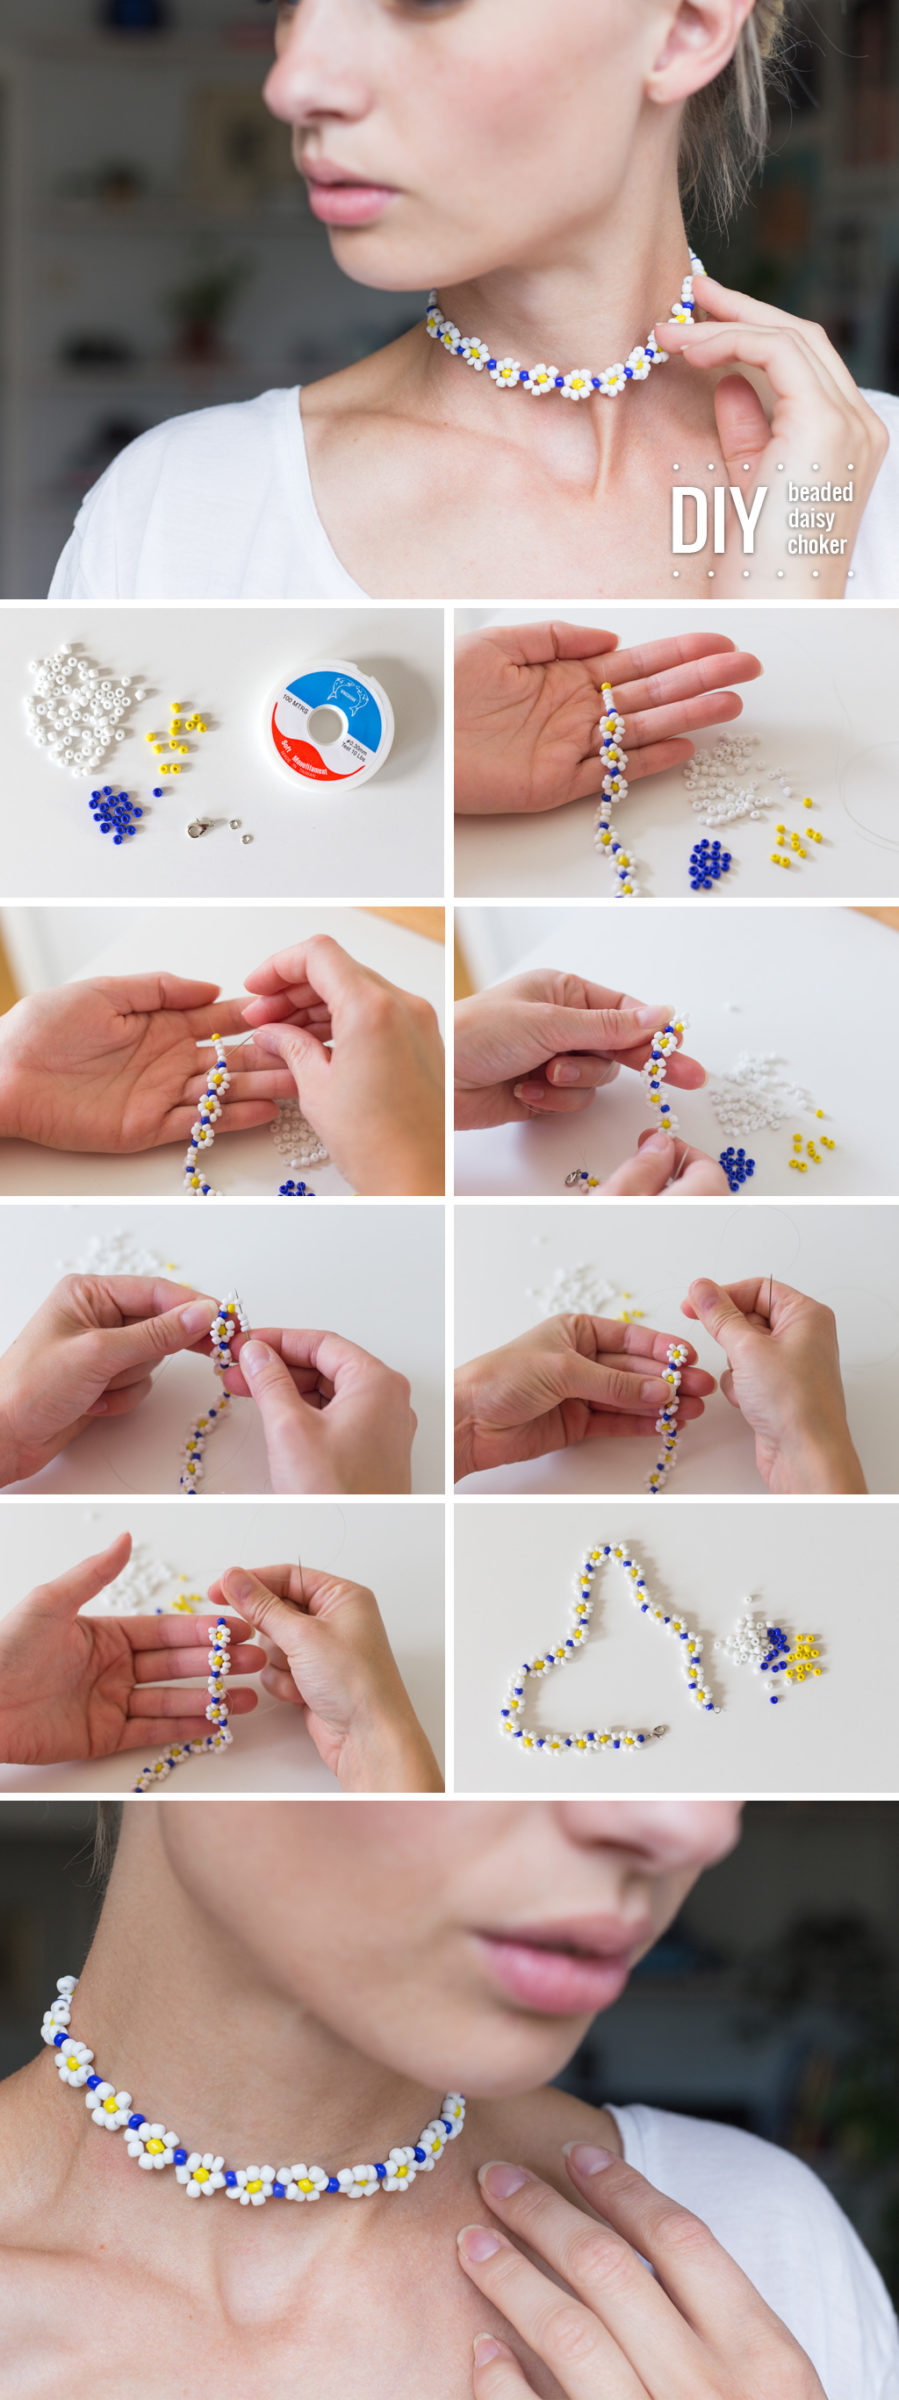 DIY Beaded daisy choker by Dnilva